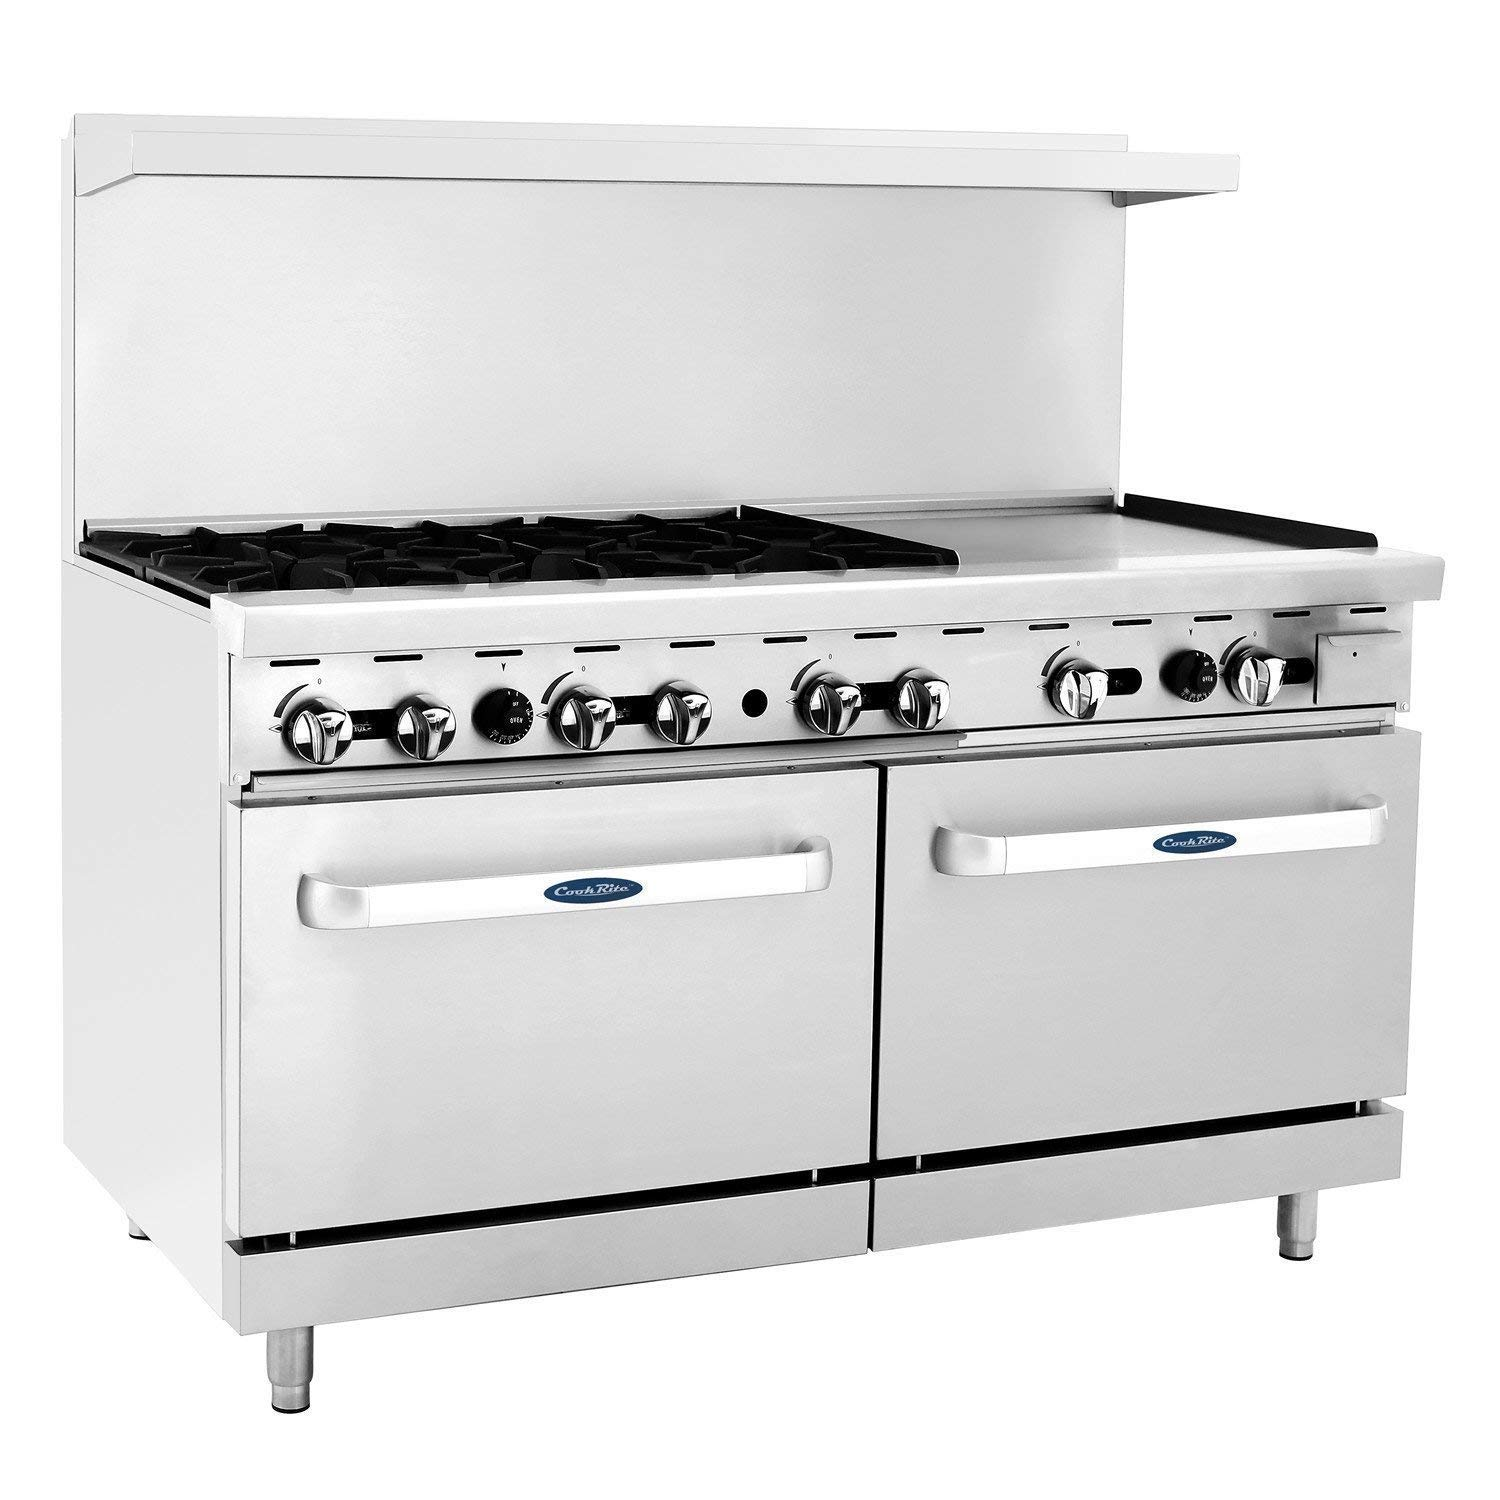 "CookRite Commercial ATO-6B24G Natural Gas Range 6 Burner Hot Plate with 24"" Manual Griddle 2 Standard Ovens 60"